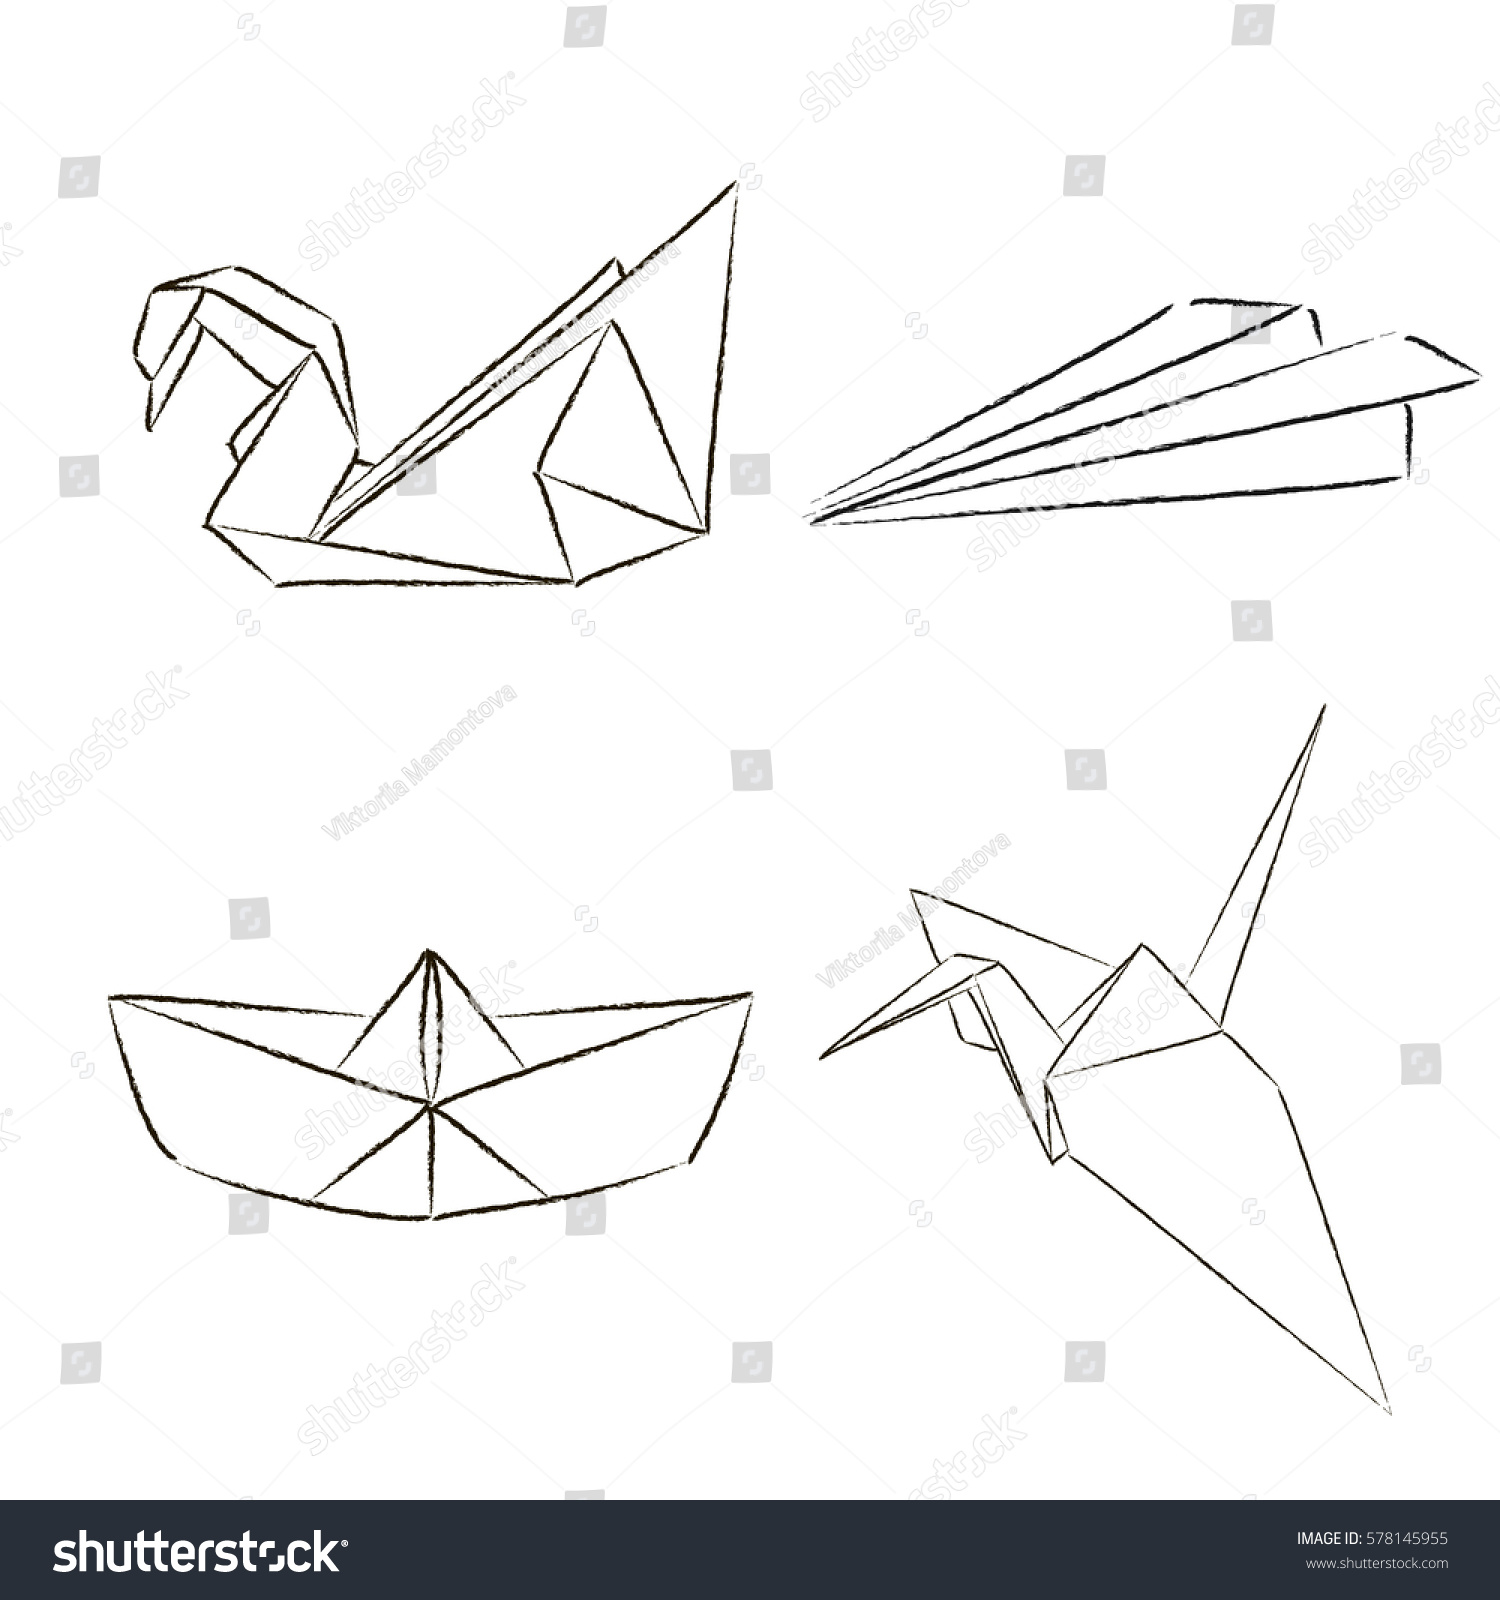 Paper Plane Diagram on paper plane painting, paper plane outline, paper plane illustration, paper plane blueprints, paper plane project, paper plane art, paper plane color, paper plane pattern, paper plane model, paper plane letter, paper plane layout, paper plane graphic, paper plane drawing, paper plane title, helicopter diagram, paper plane cartoon, paper plane paper, paper plane icon, paper plane note, paper plane template,